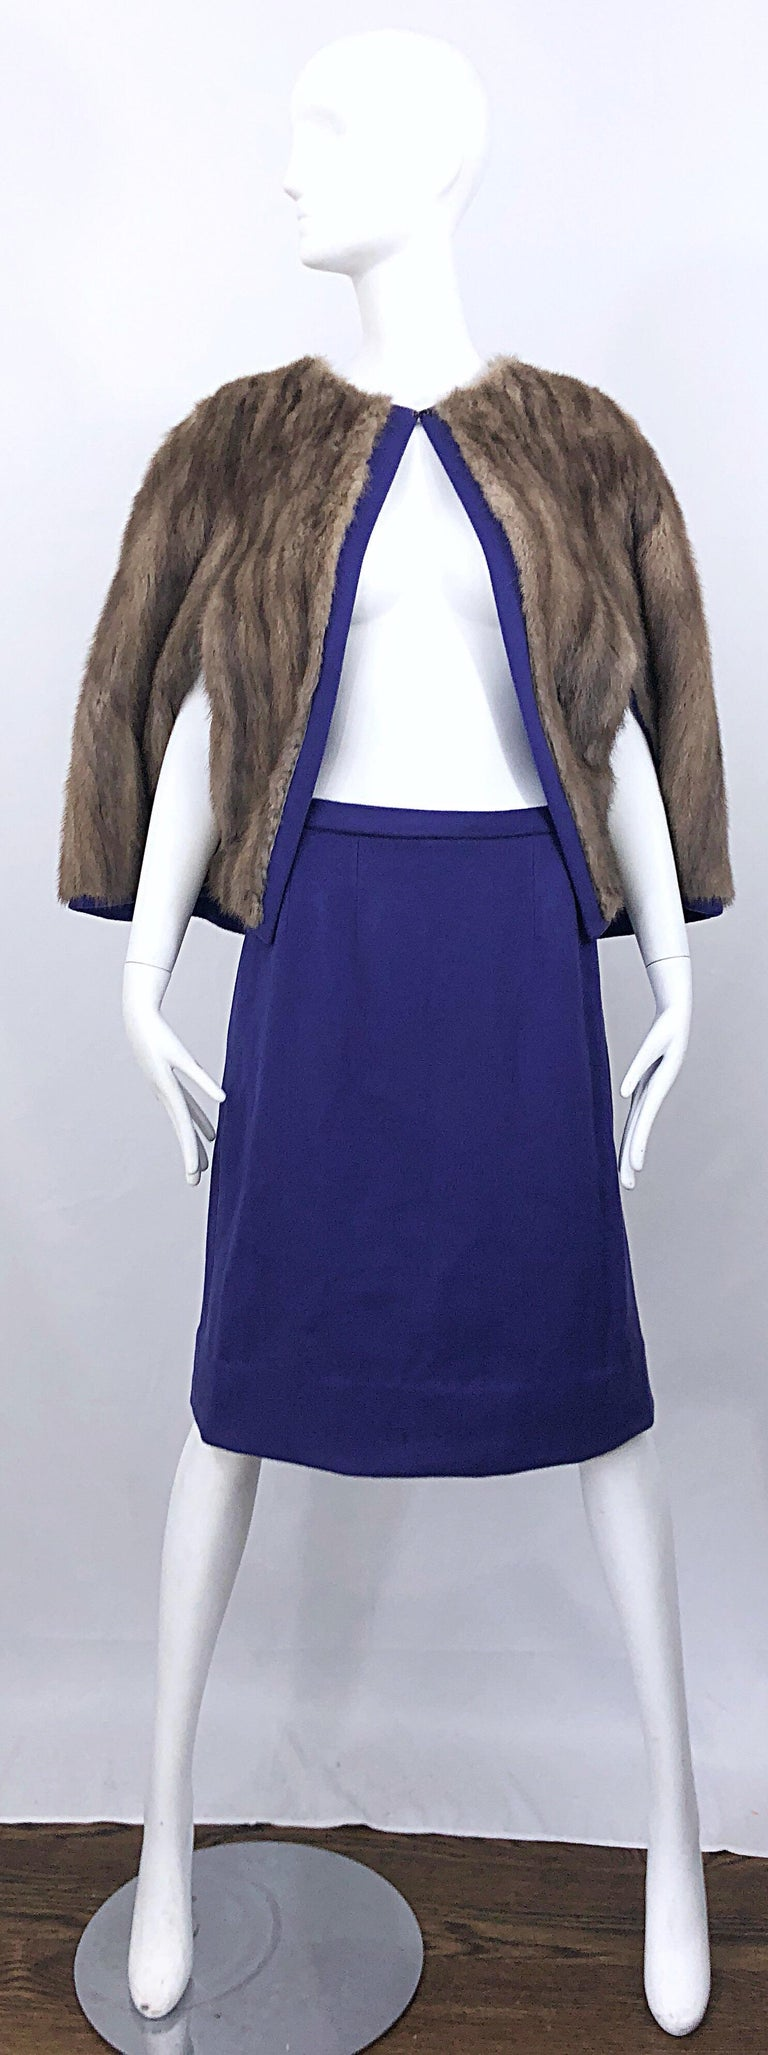 Chic 60s reversible sable fur and purple wool cape and A-Line skirt suit! Cape jacket features the softest, most luxurious sable fur that is a light brown, with a tinge of grey. Hook-and-eye closure at top neck. Brand new hidden zipper up the side